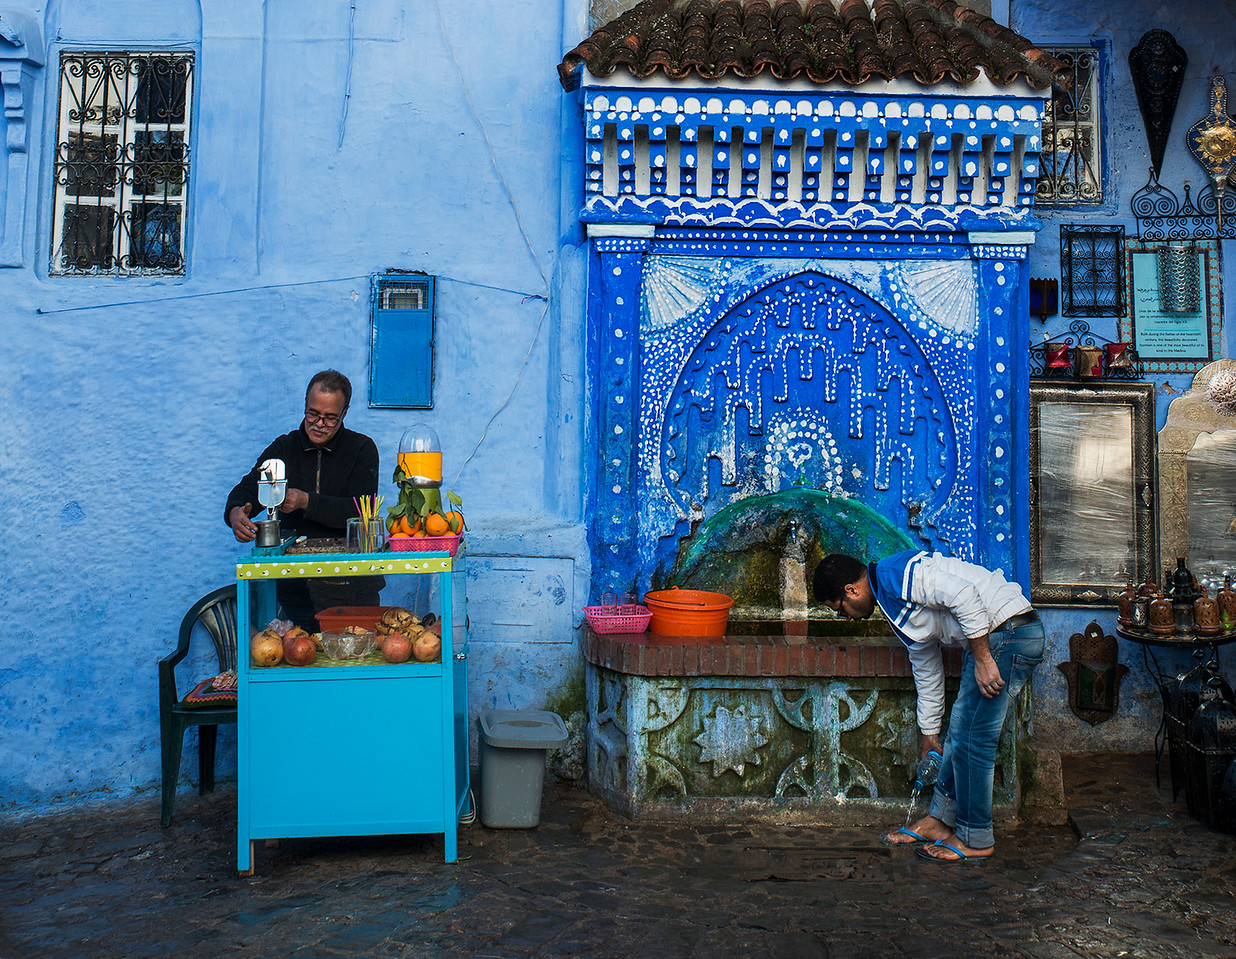 Street scene in the blue city of Chefchaouen.<br /> <br /> Chefchaouen, Morocco, 2018.